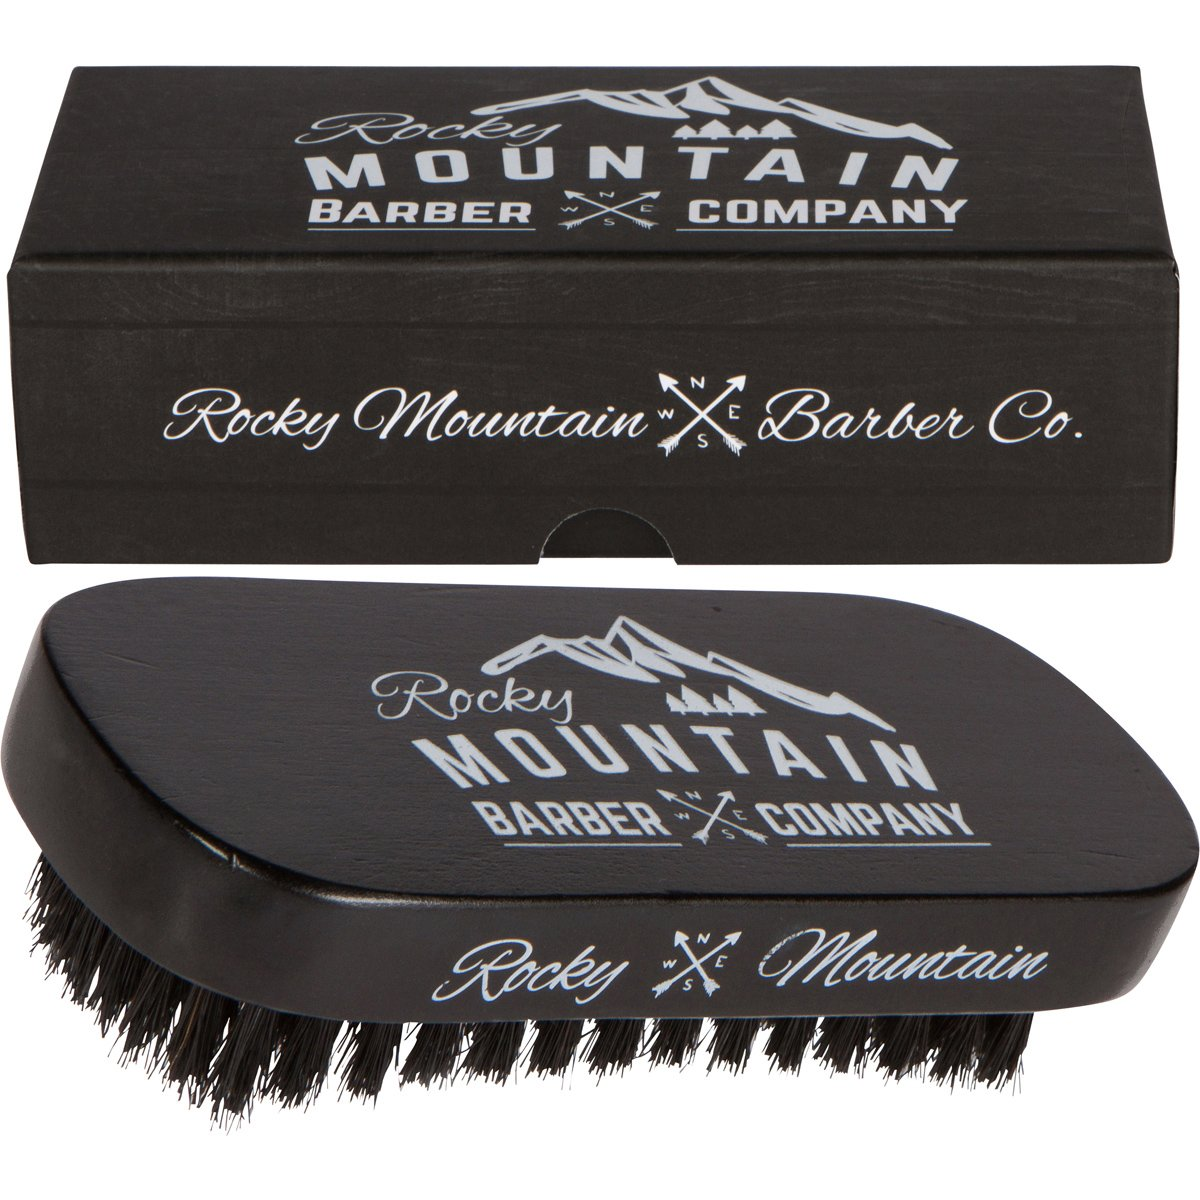 Amazon.com : Beard Comb - Natural Sandalwood for Hair with Scented ...